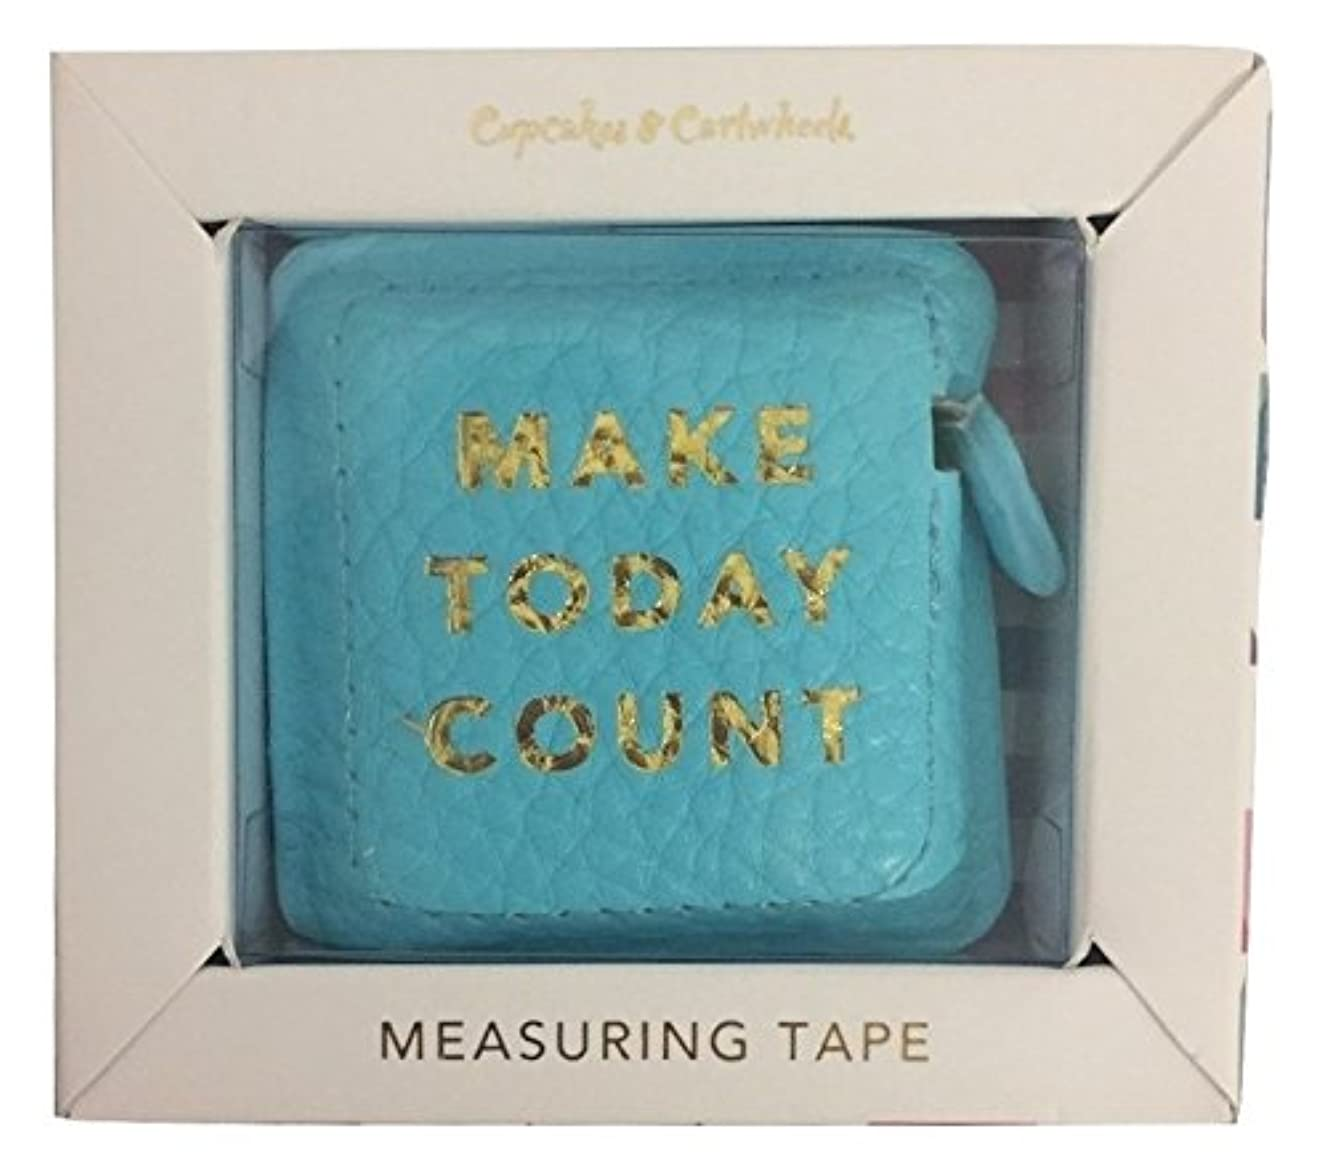 Make Today Count Boss Girl Gold Hot Stamped Measuring Tape in Gift Box